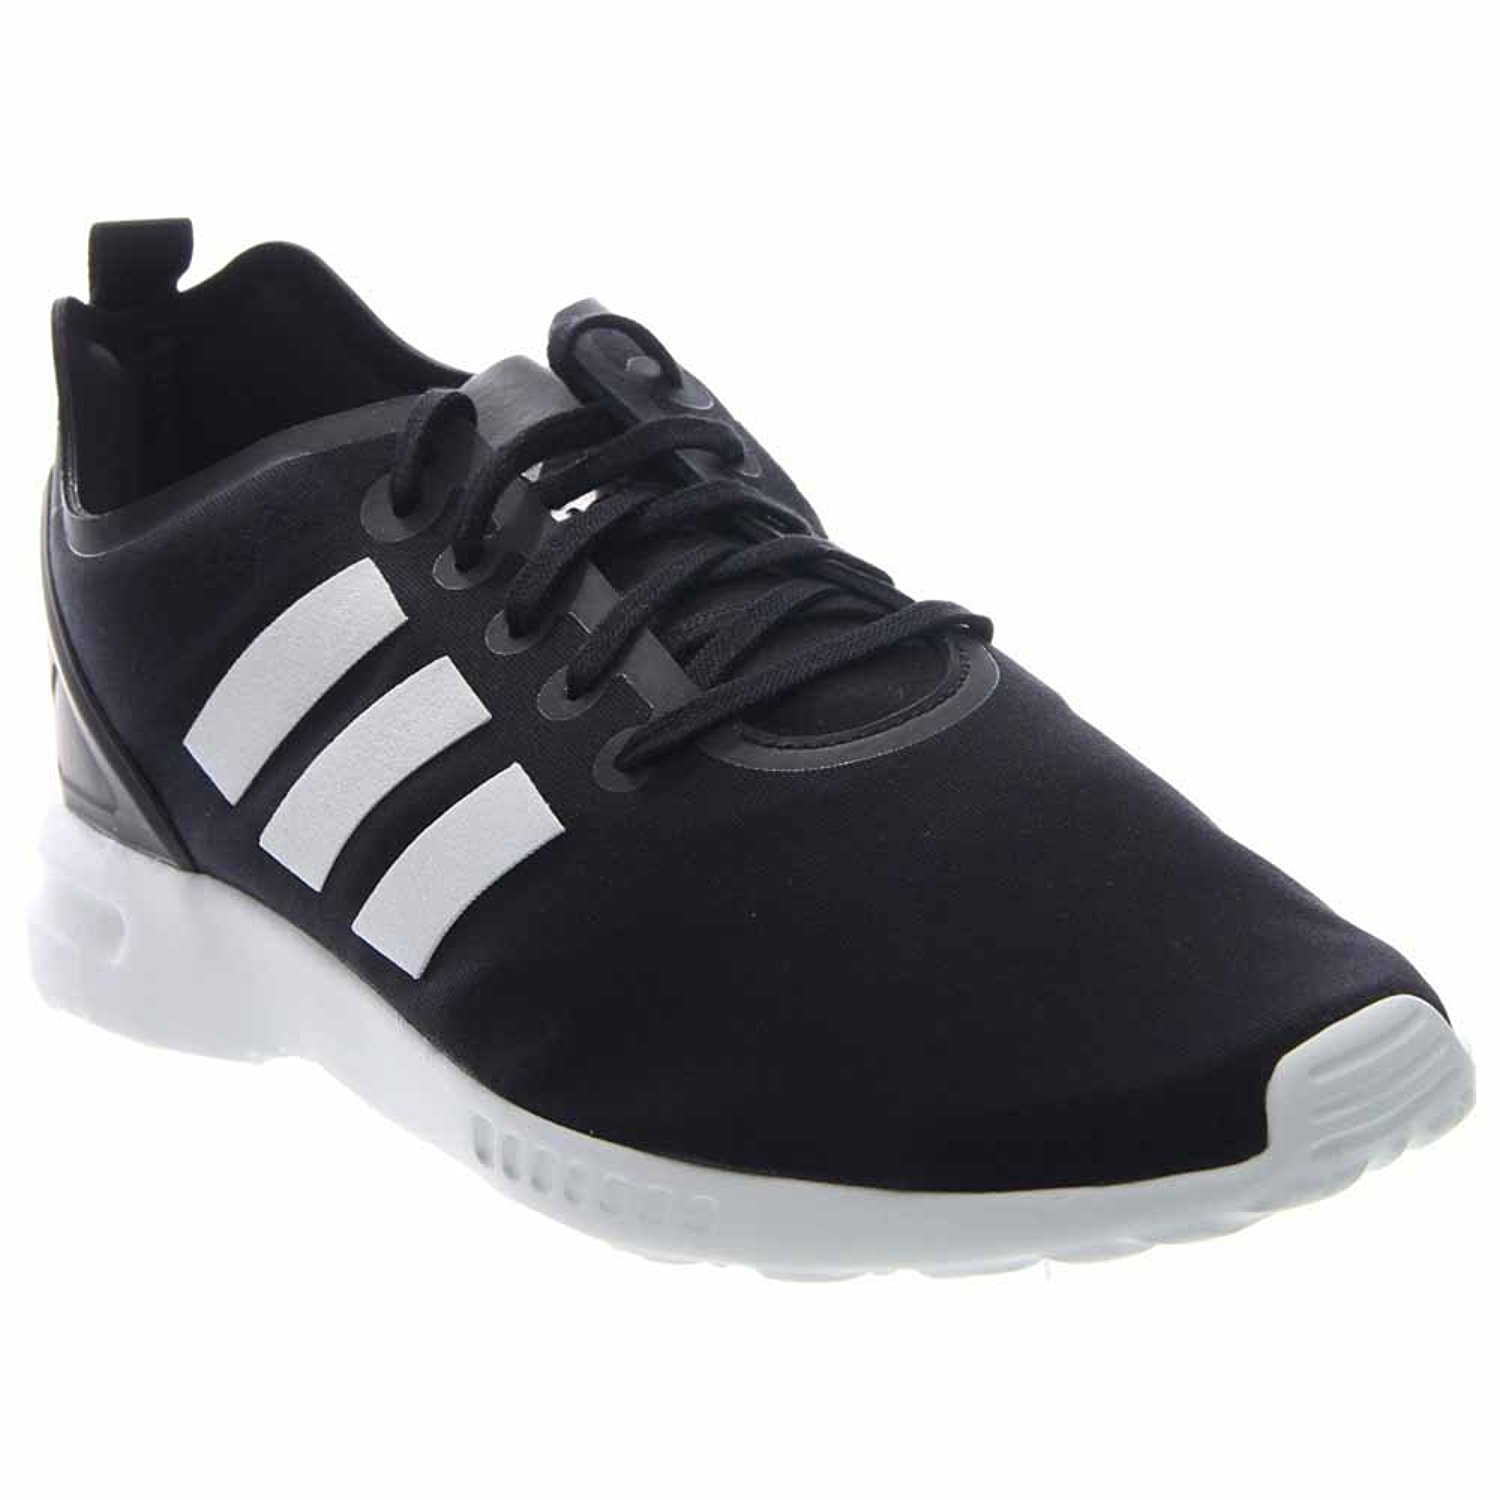 358af332d7f40 Get Quotations · adidas Zx Flux Smooth Women s Shoes